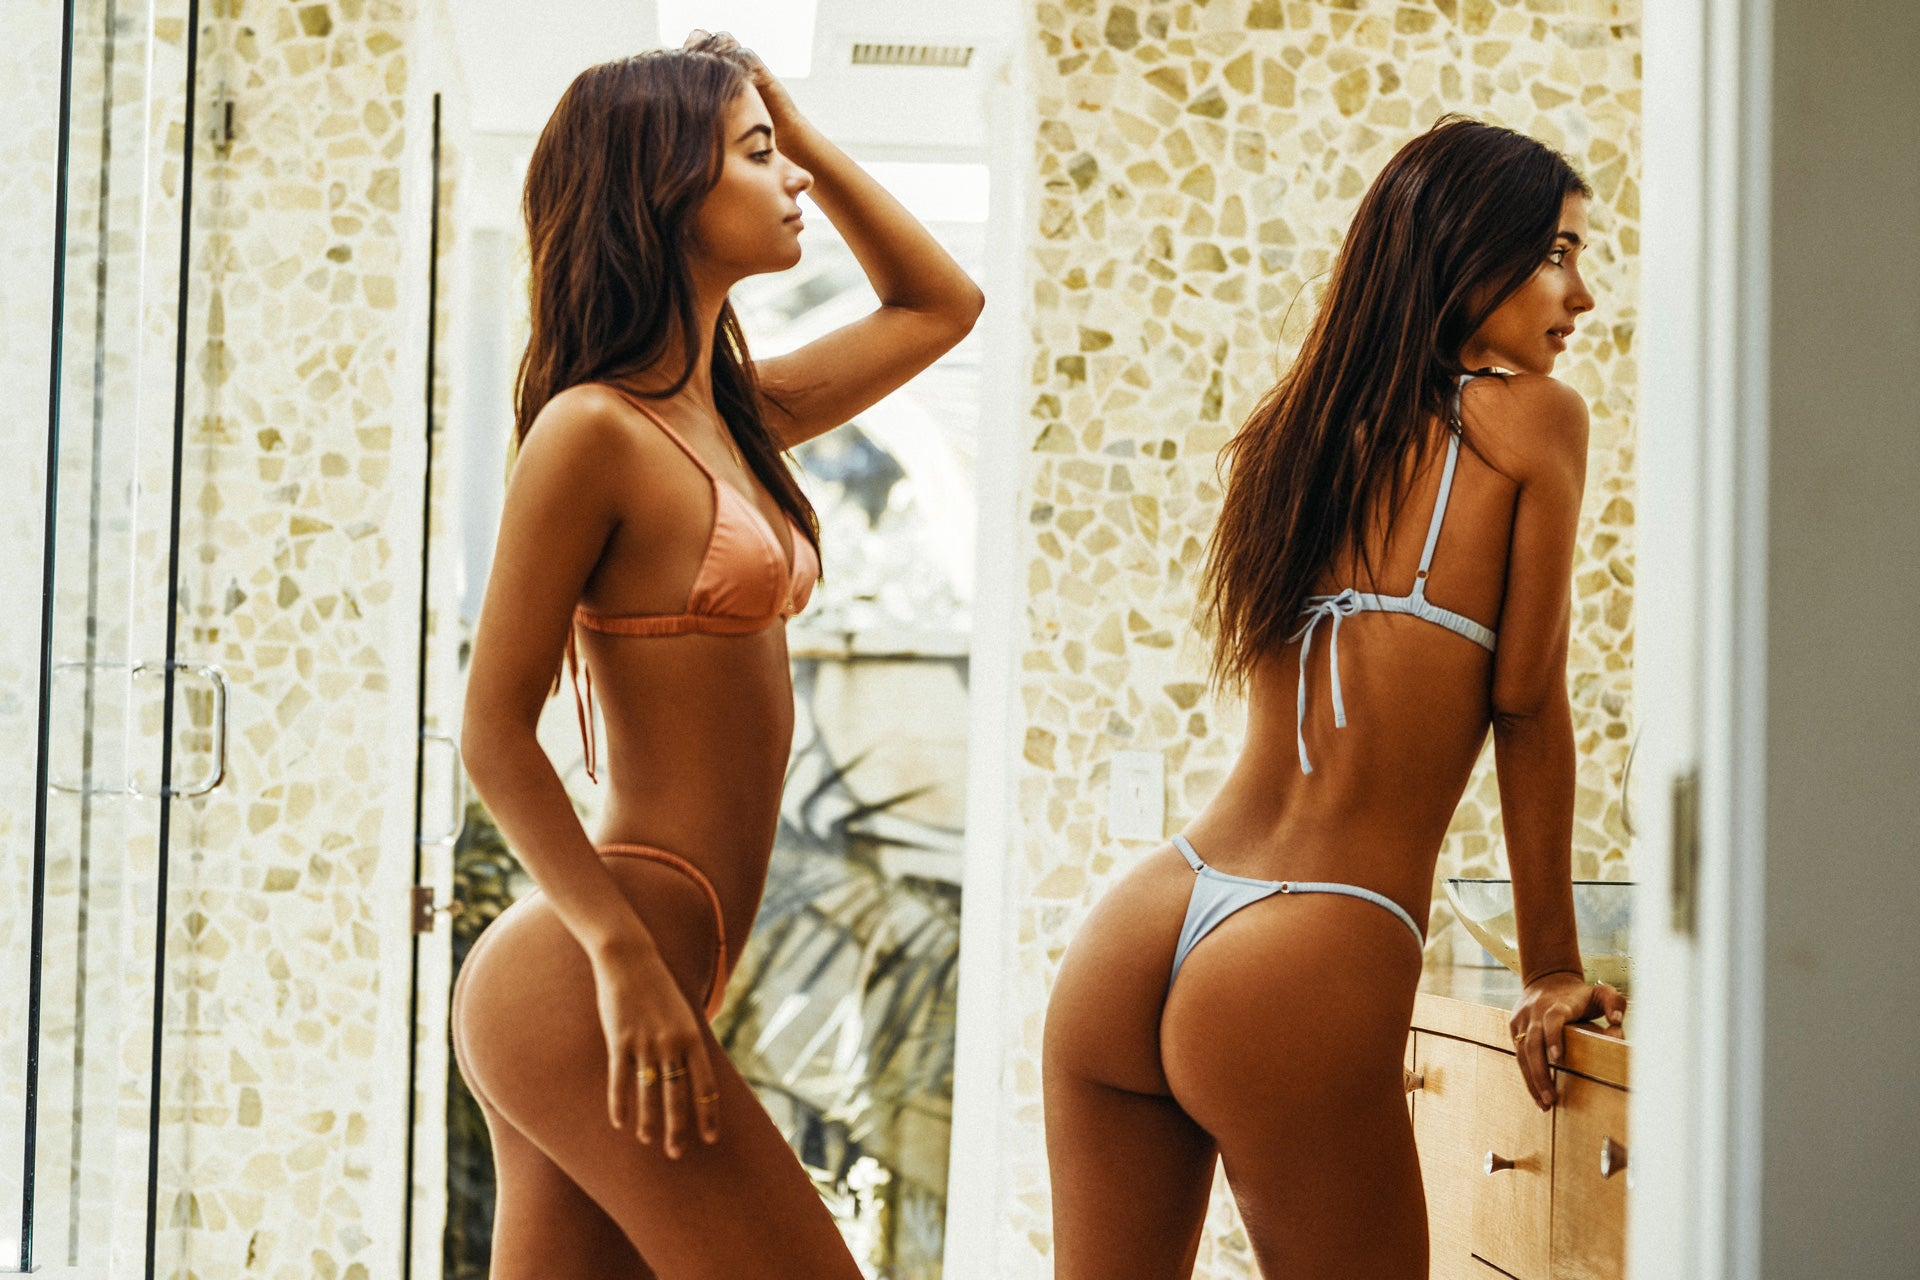 Elisha and Renee Herbert wearing the Delight Peach and Baby Blue underwear set while in the bathroom